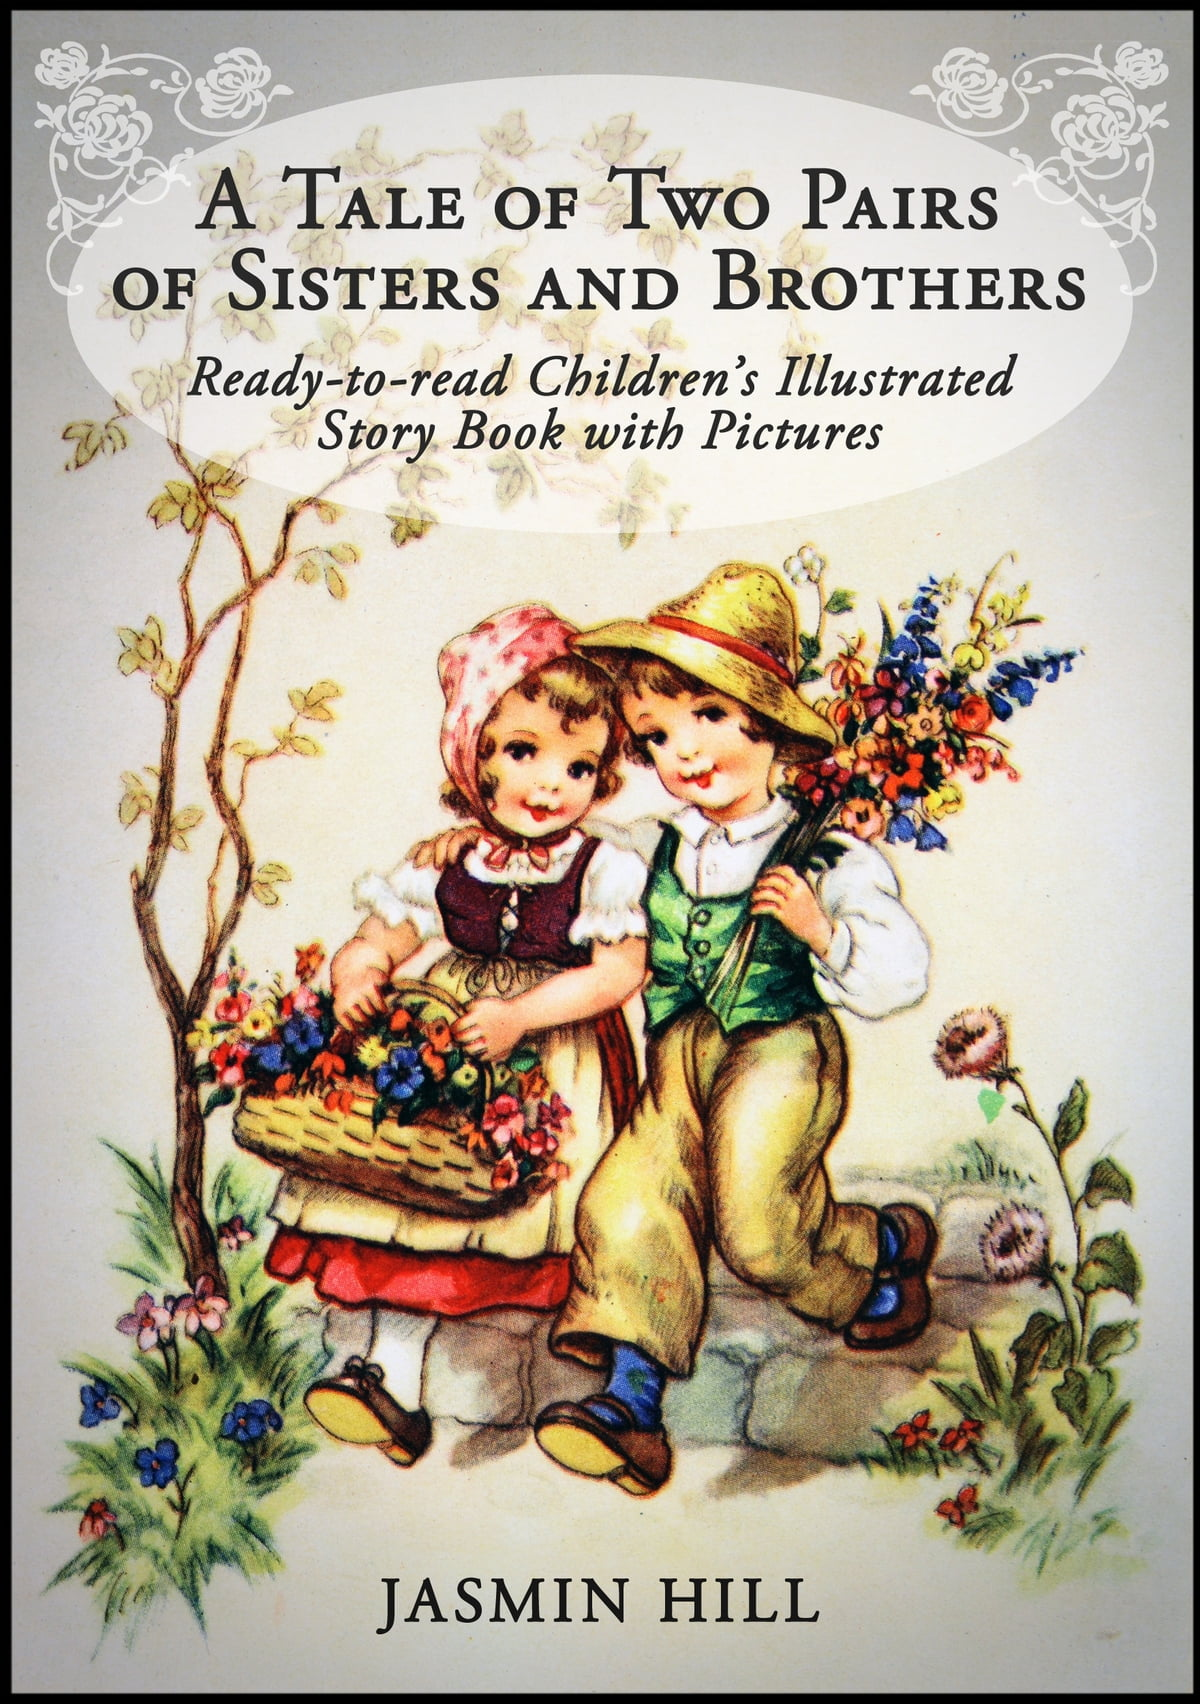 A Tale Of Two Pairs Of Sisters And Brothers: Ready-to-read Childrens  Illustrated Story Book eBook by Jasmin Hill - 9781301105168 | Rakuten Kobo